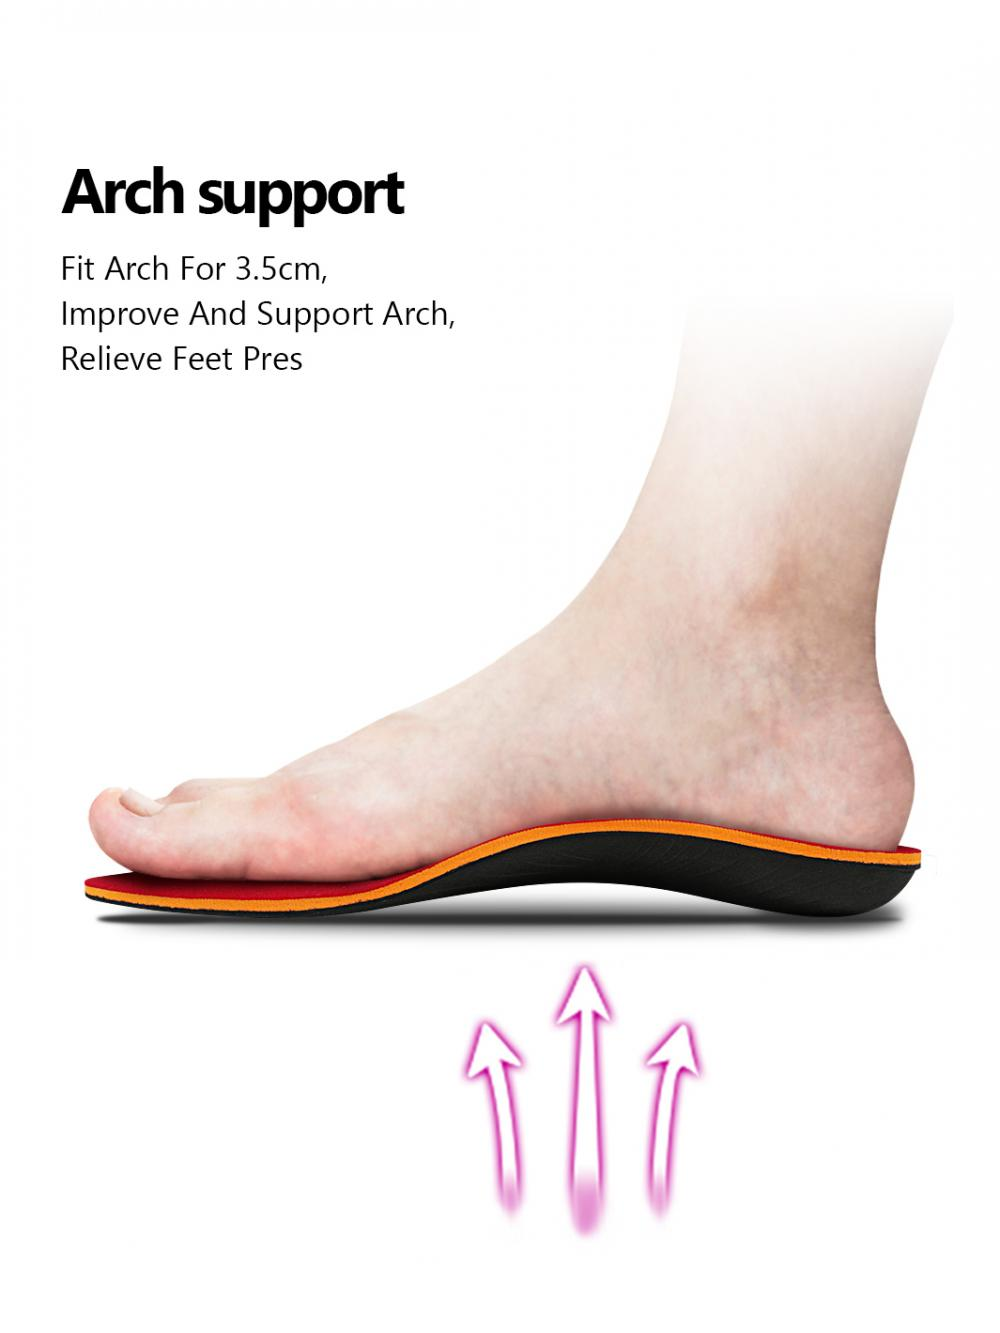 Arch Support Inserts For Plantar Fasciitis 3